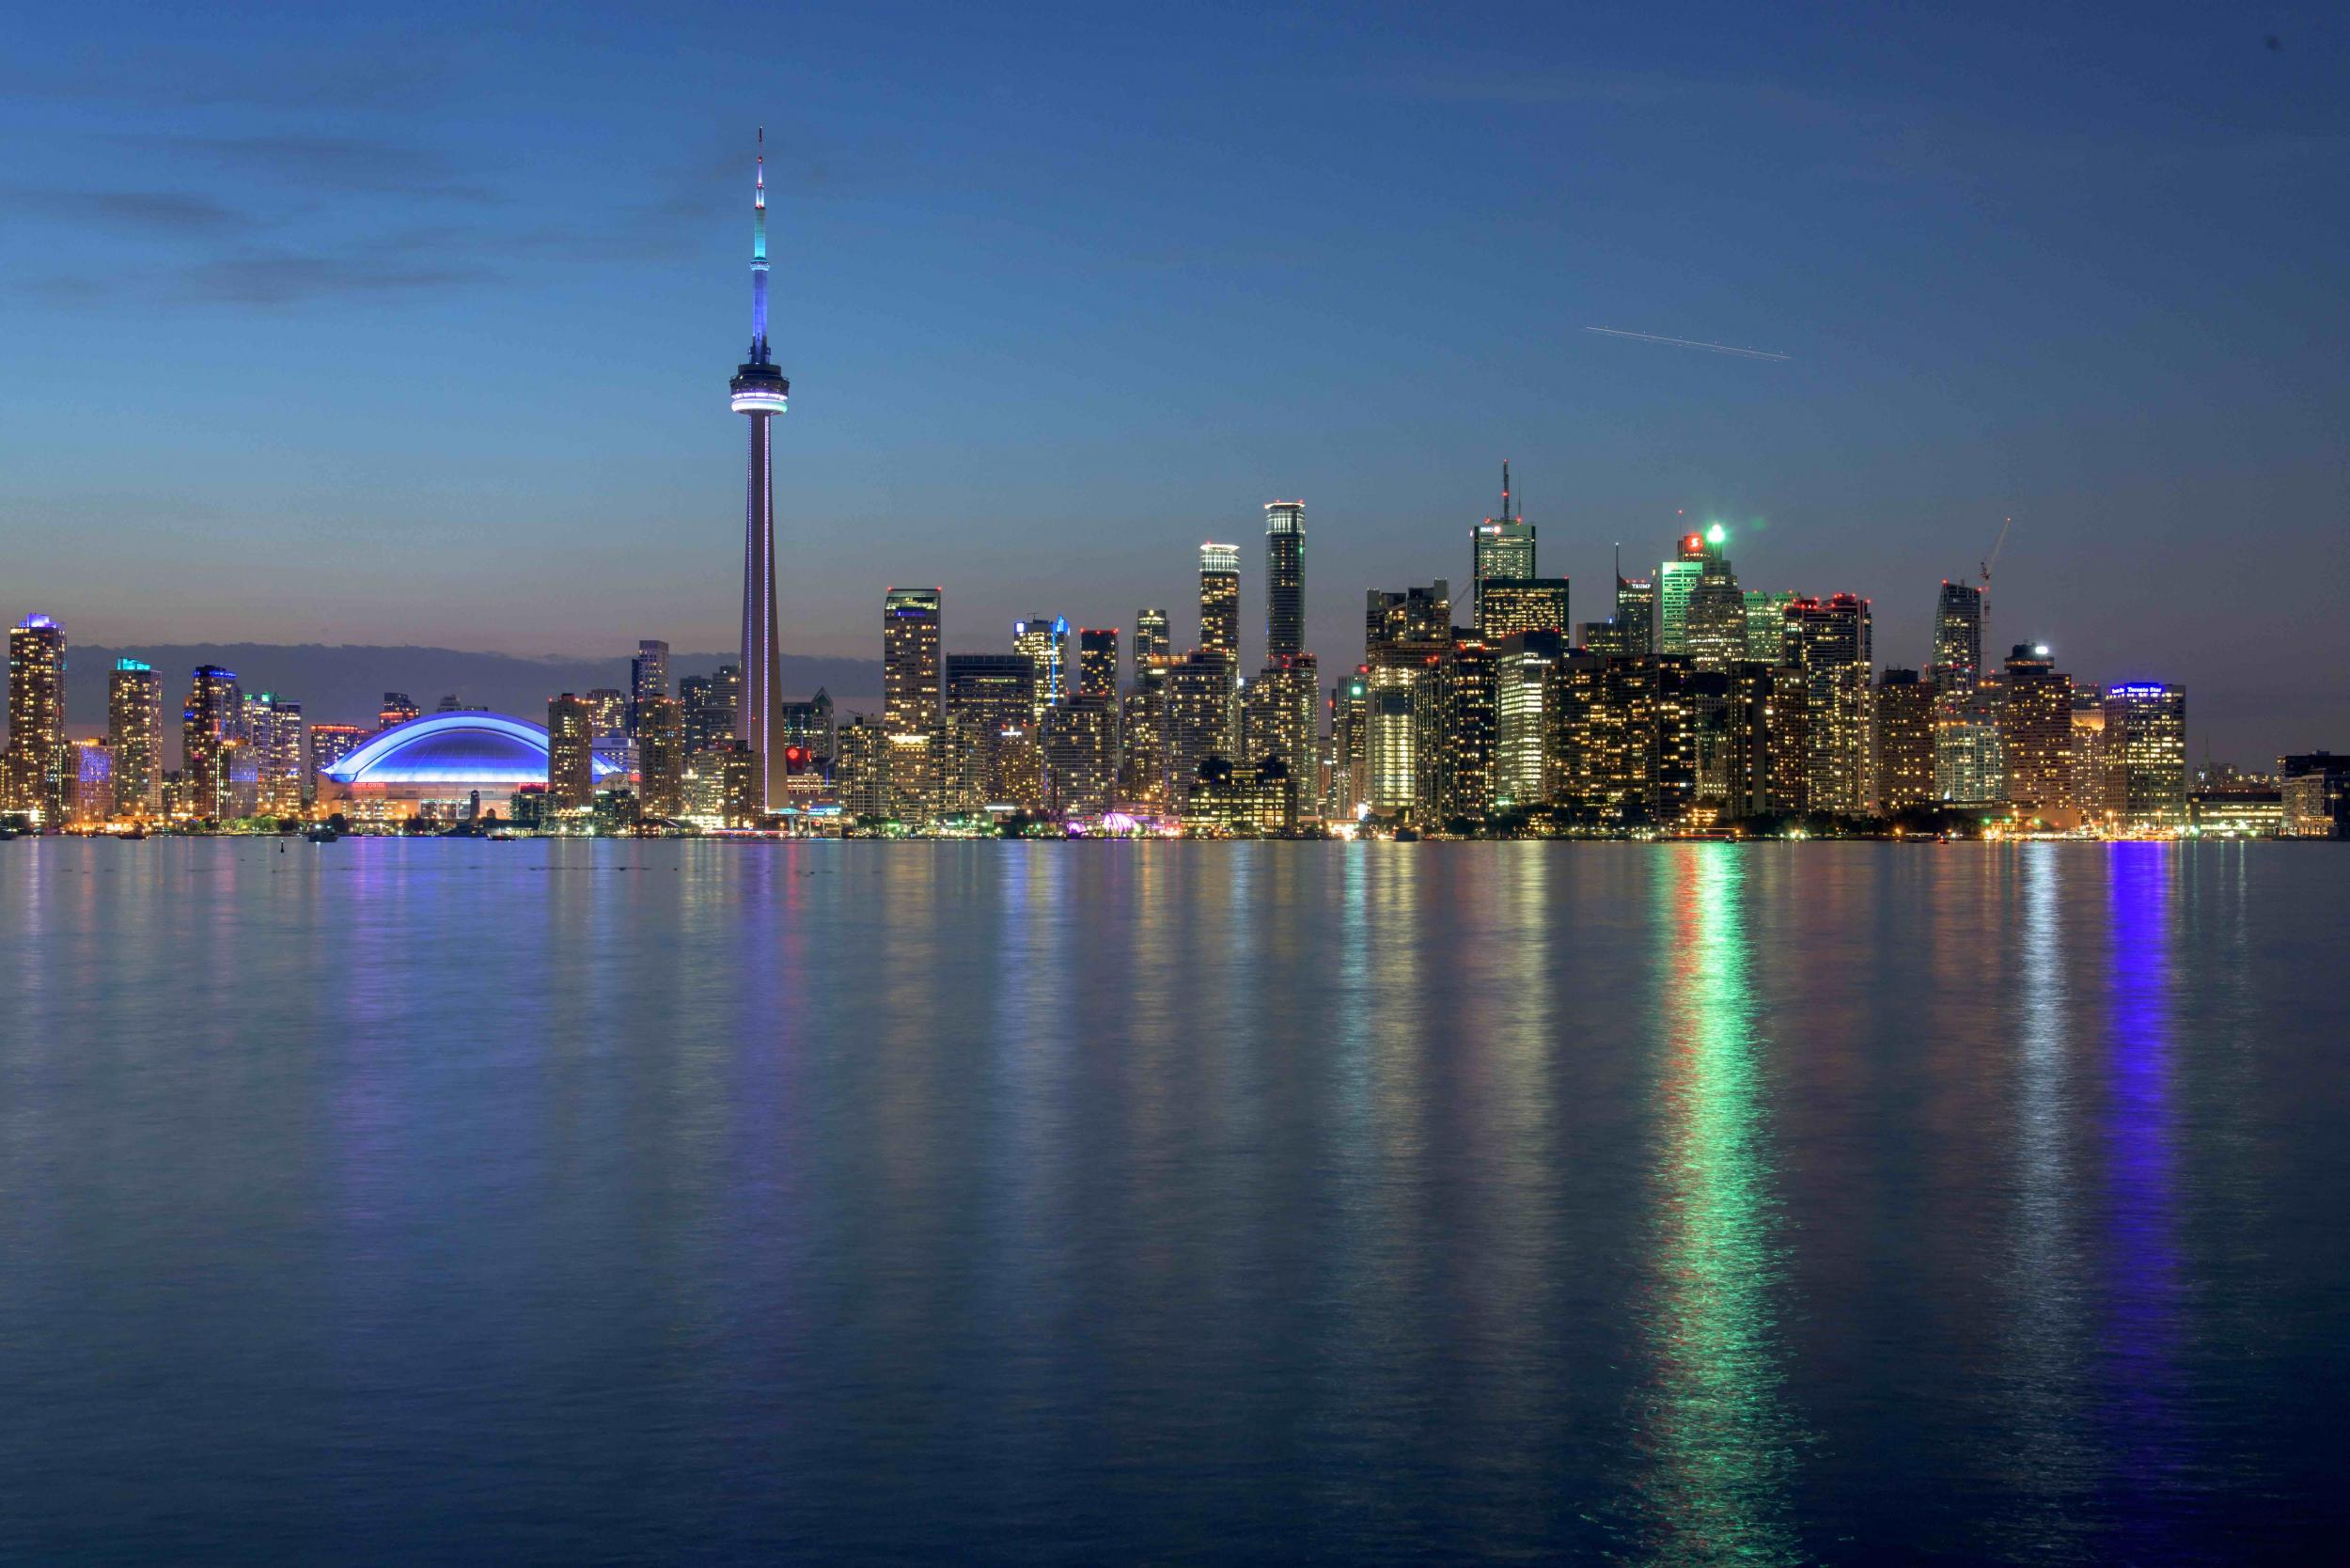 Toronto city guide: Where to eat, drink, shop and stay in Canada's capital of cool